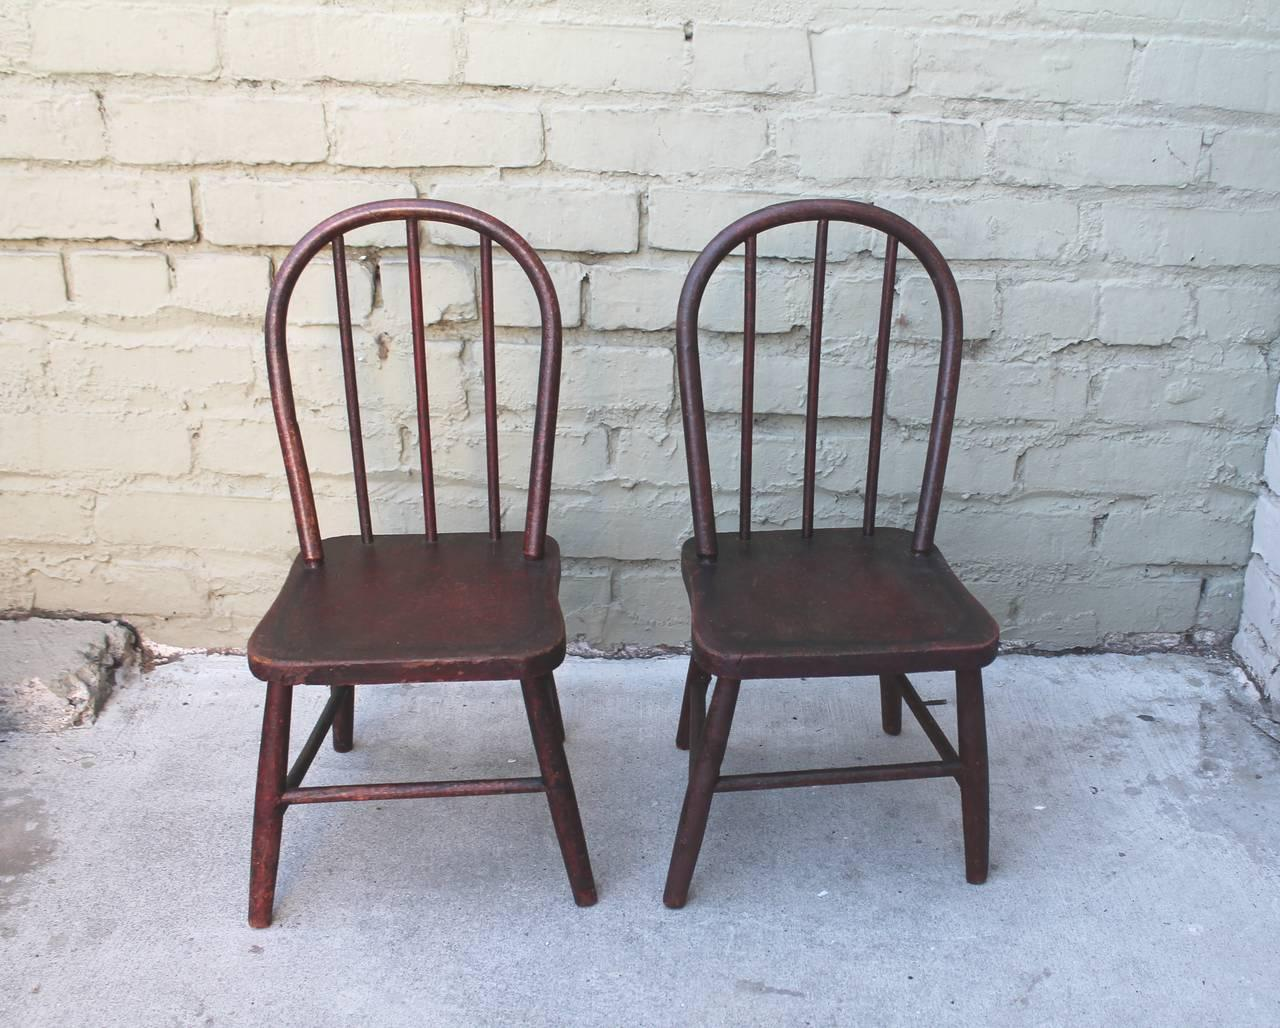 19th Century Original Red Painted Childrenu0027s Table and Matching Chairs - Image 6 of 10  sc 1 st  Decaso & Incredible 19th Century Original Red Painted Childrenu0027s Table and ...